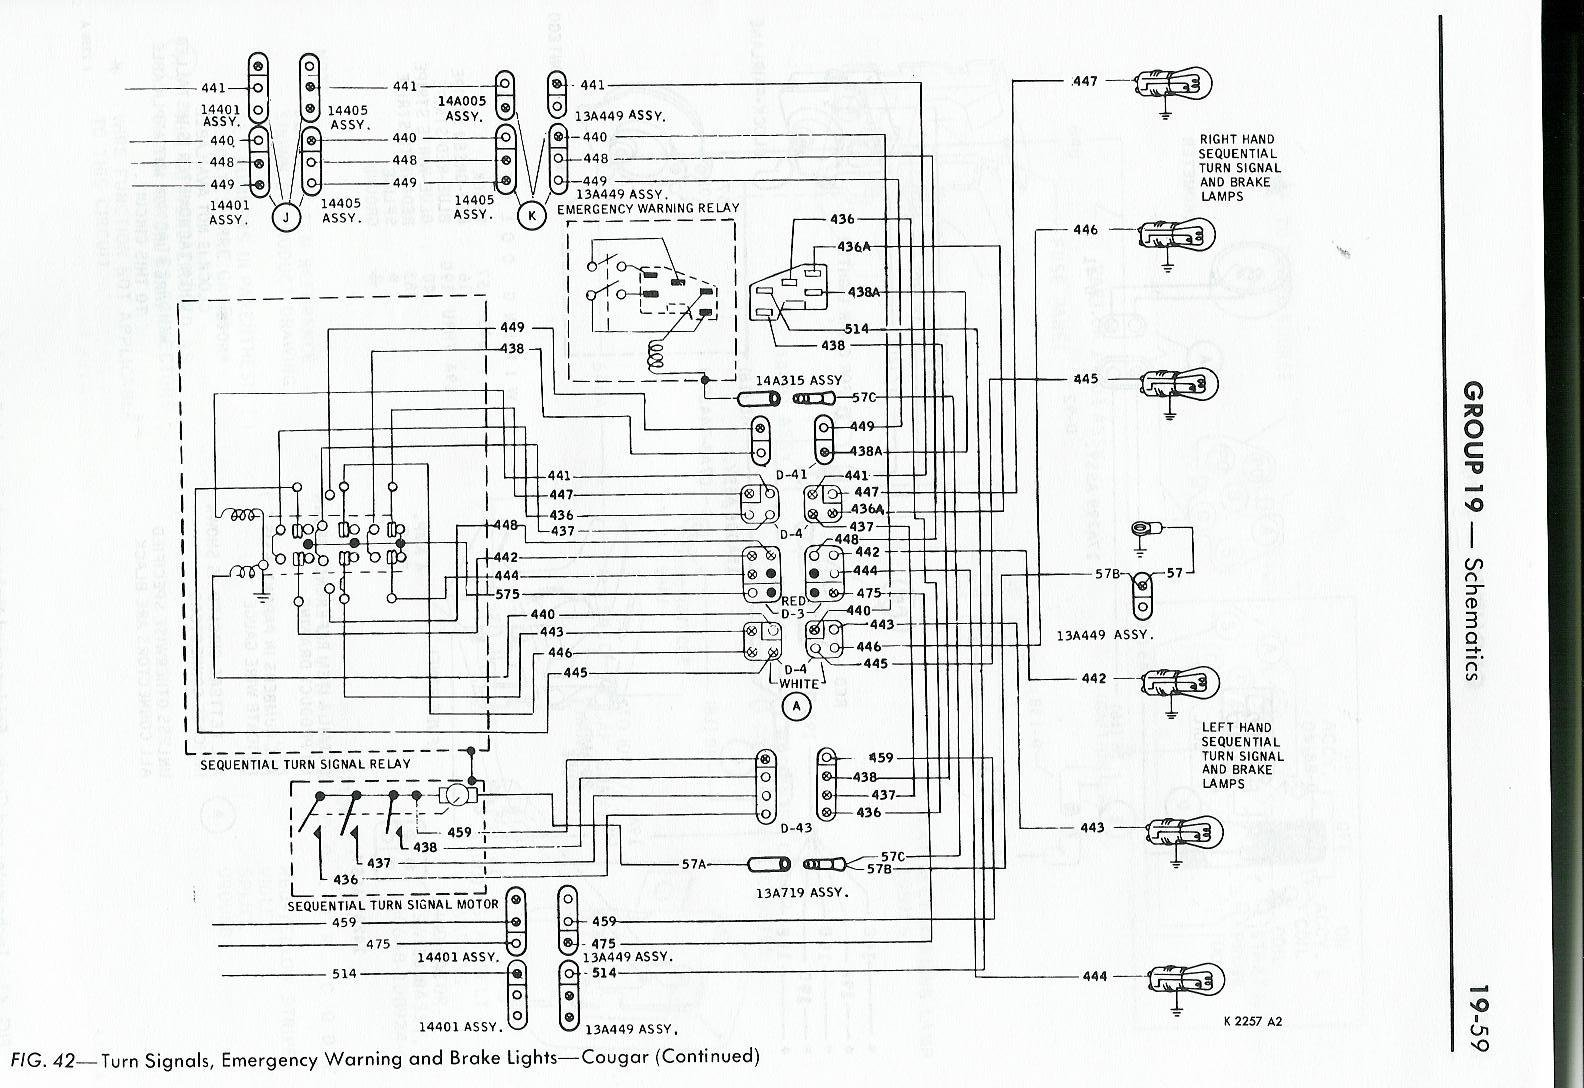 1973 mustang fuse box diagram 1973 manual repair wiring and engine 1967 cougar under dash wiring